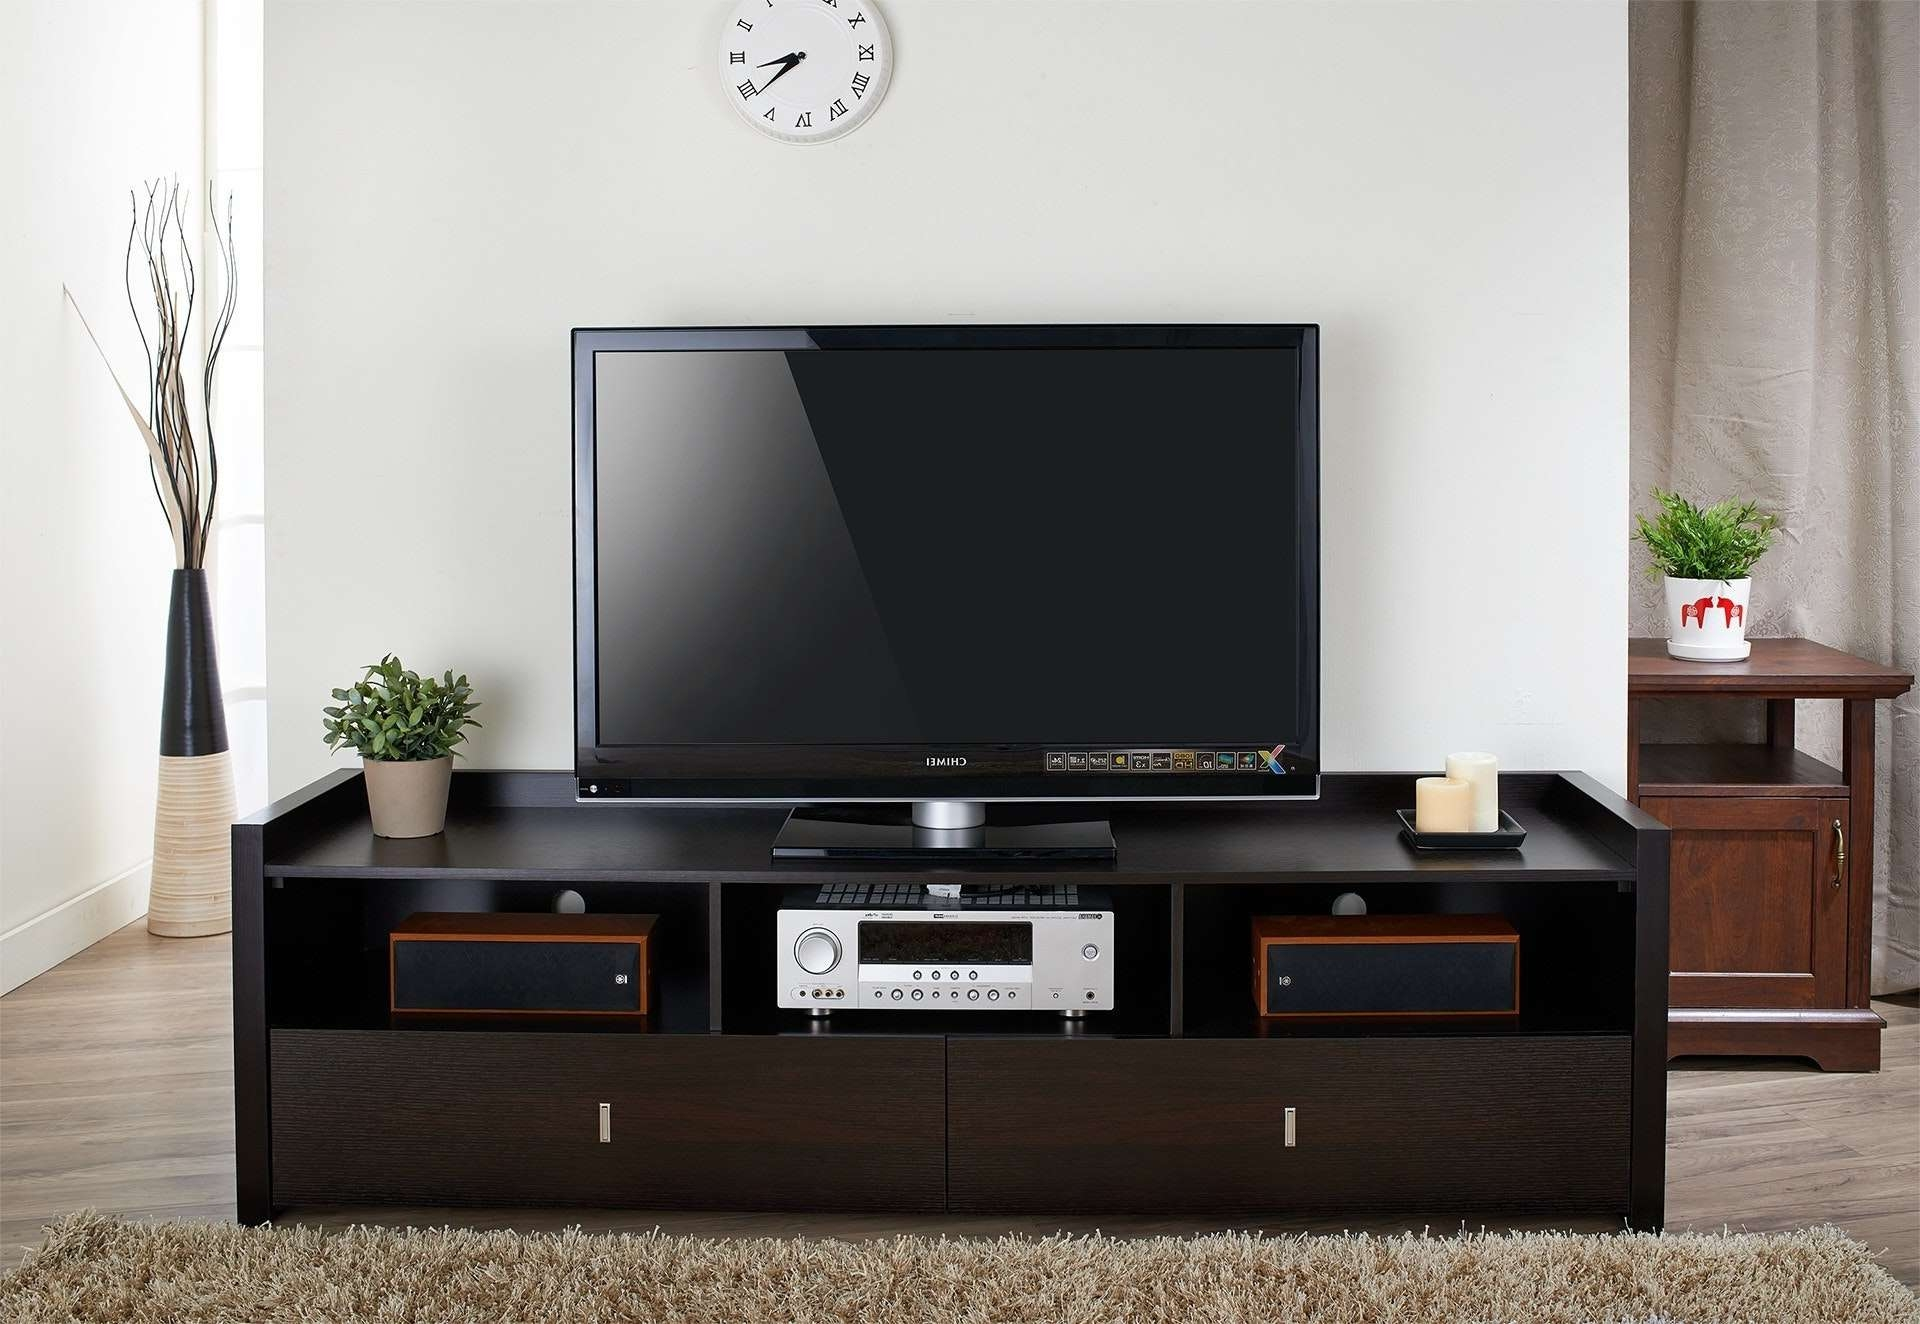 80 Inch Tv Stand Home Design Amish Furniture With Fireplace Stands For 80 Inch Tv Stands (View 1 of 15)